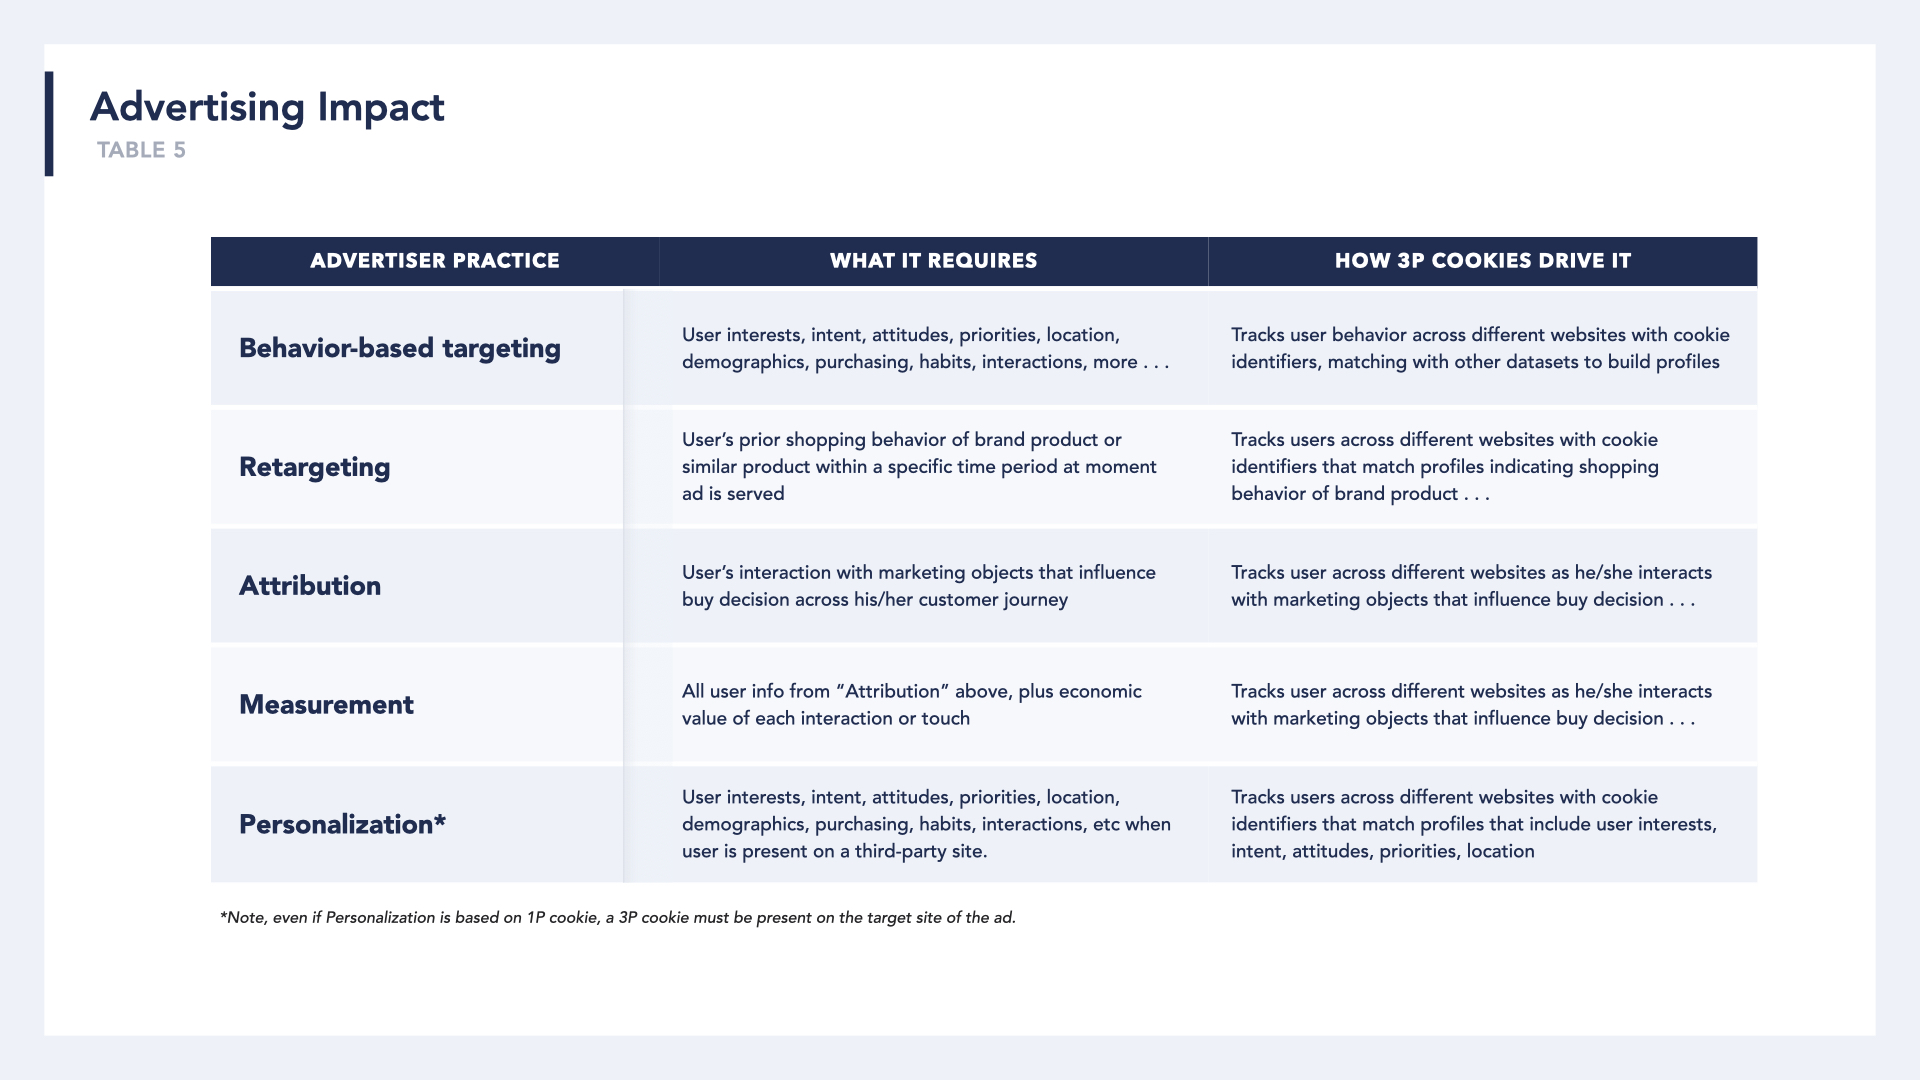 A table of advertiser practices, what they require, and how 3P cookies drive the practice.